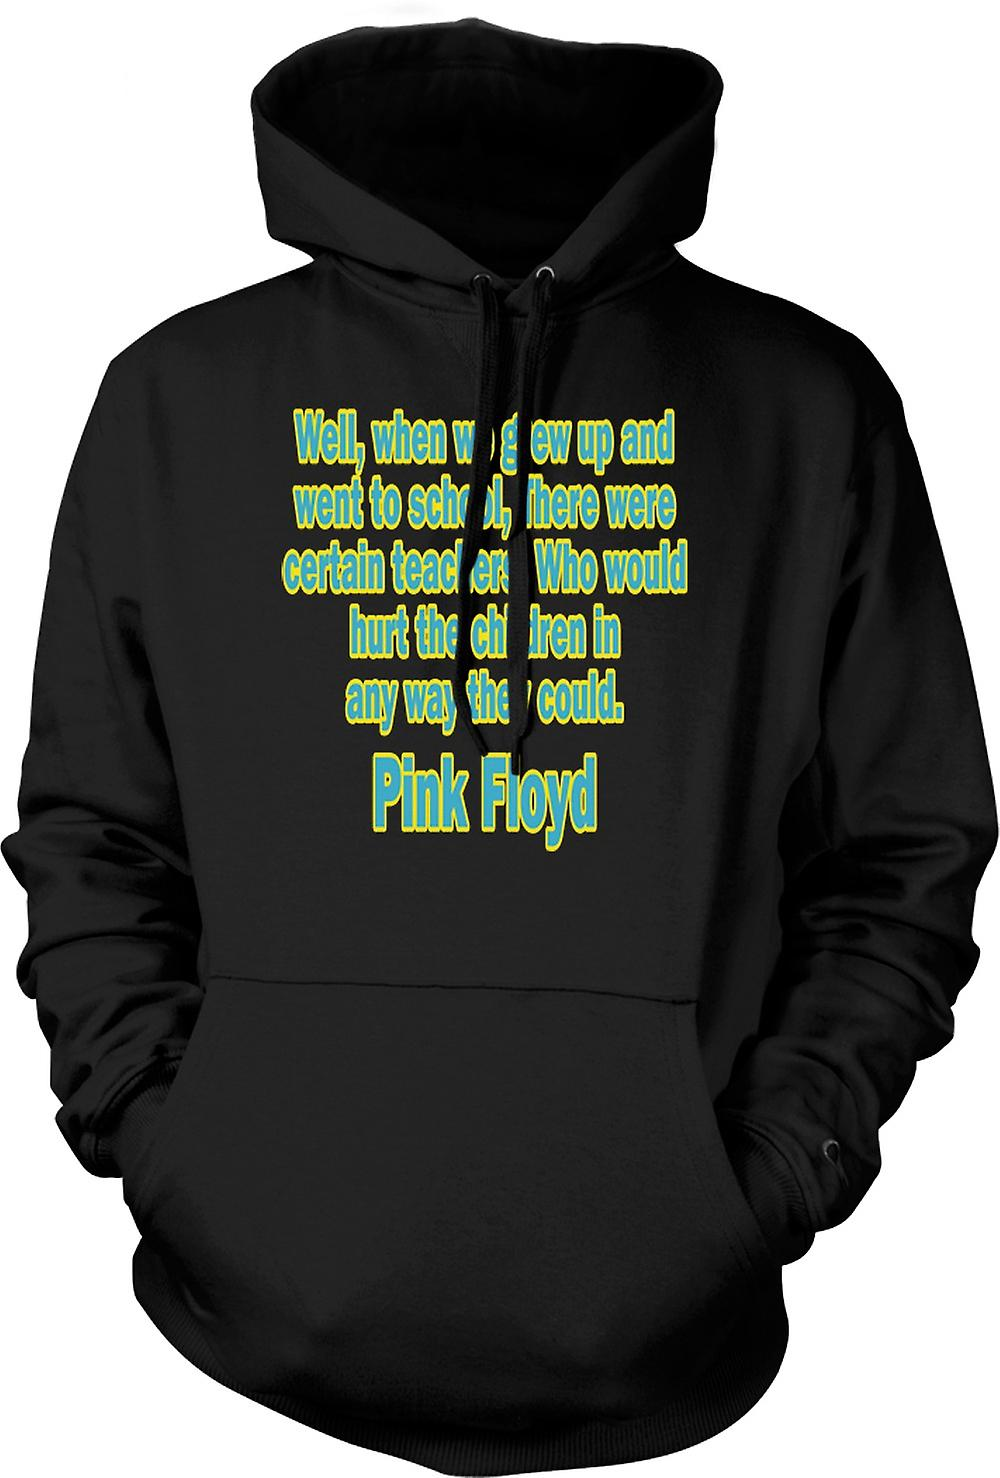 Mens Hoodie - There Were Certain Teachers Quote - Pink Floyd